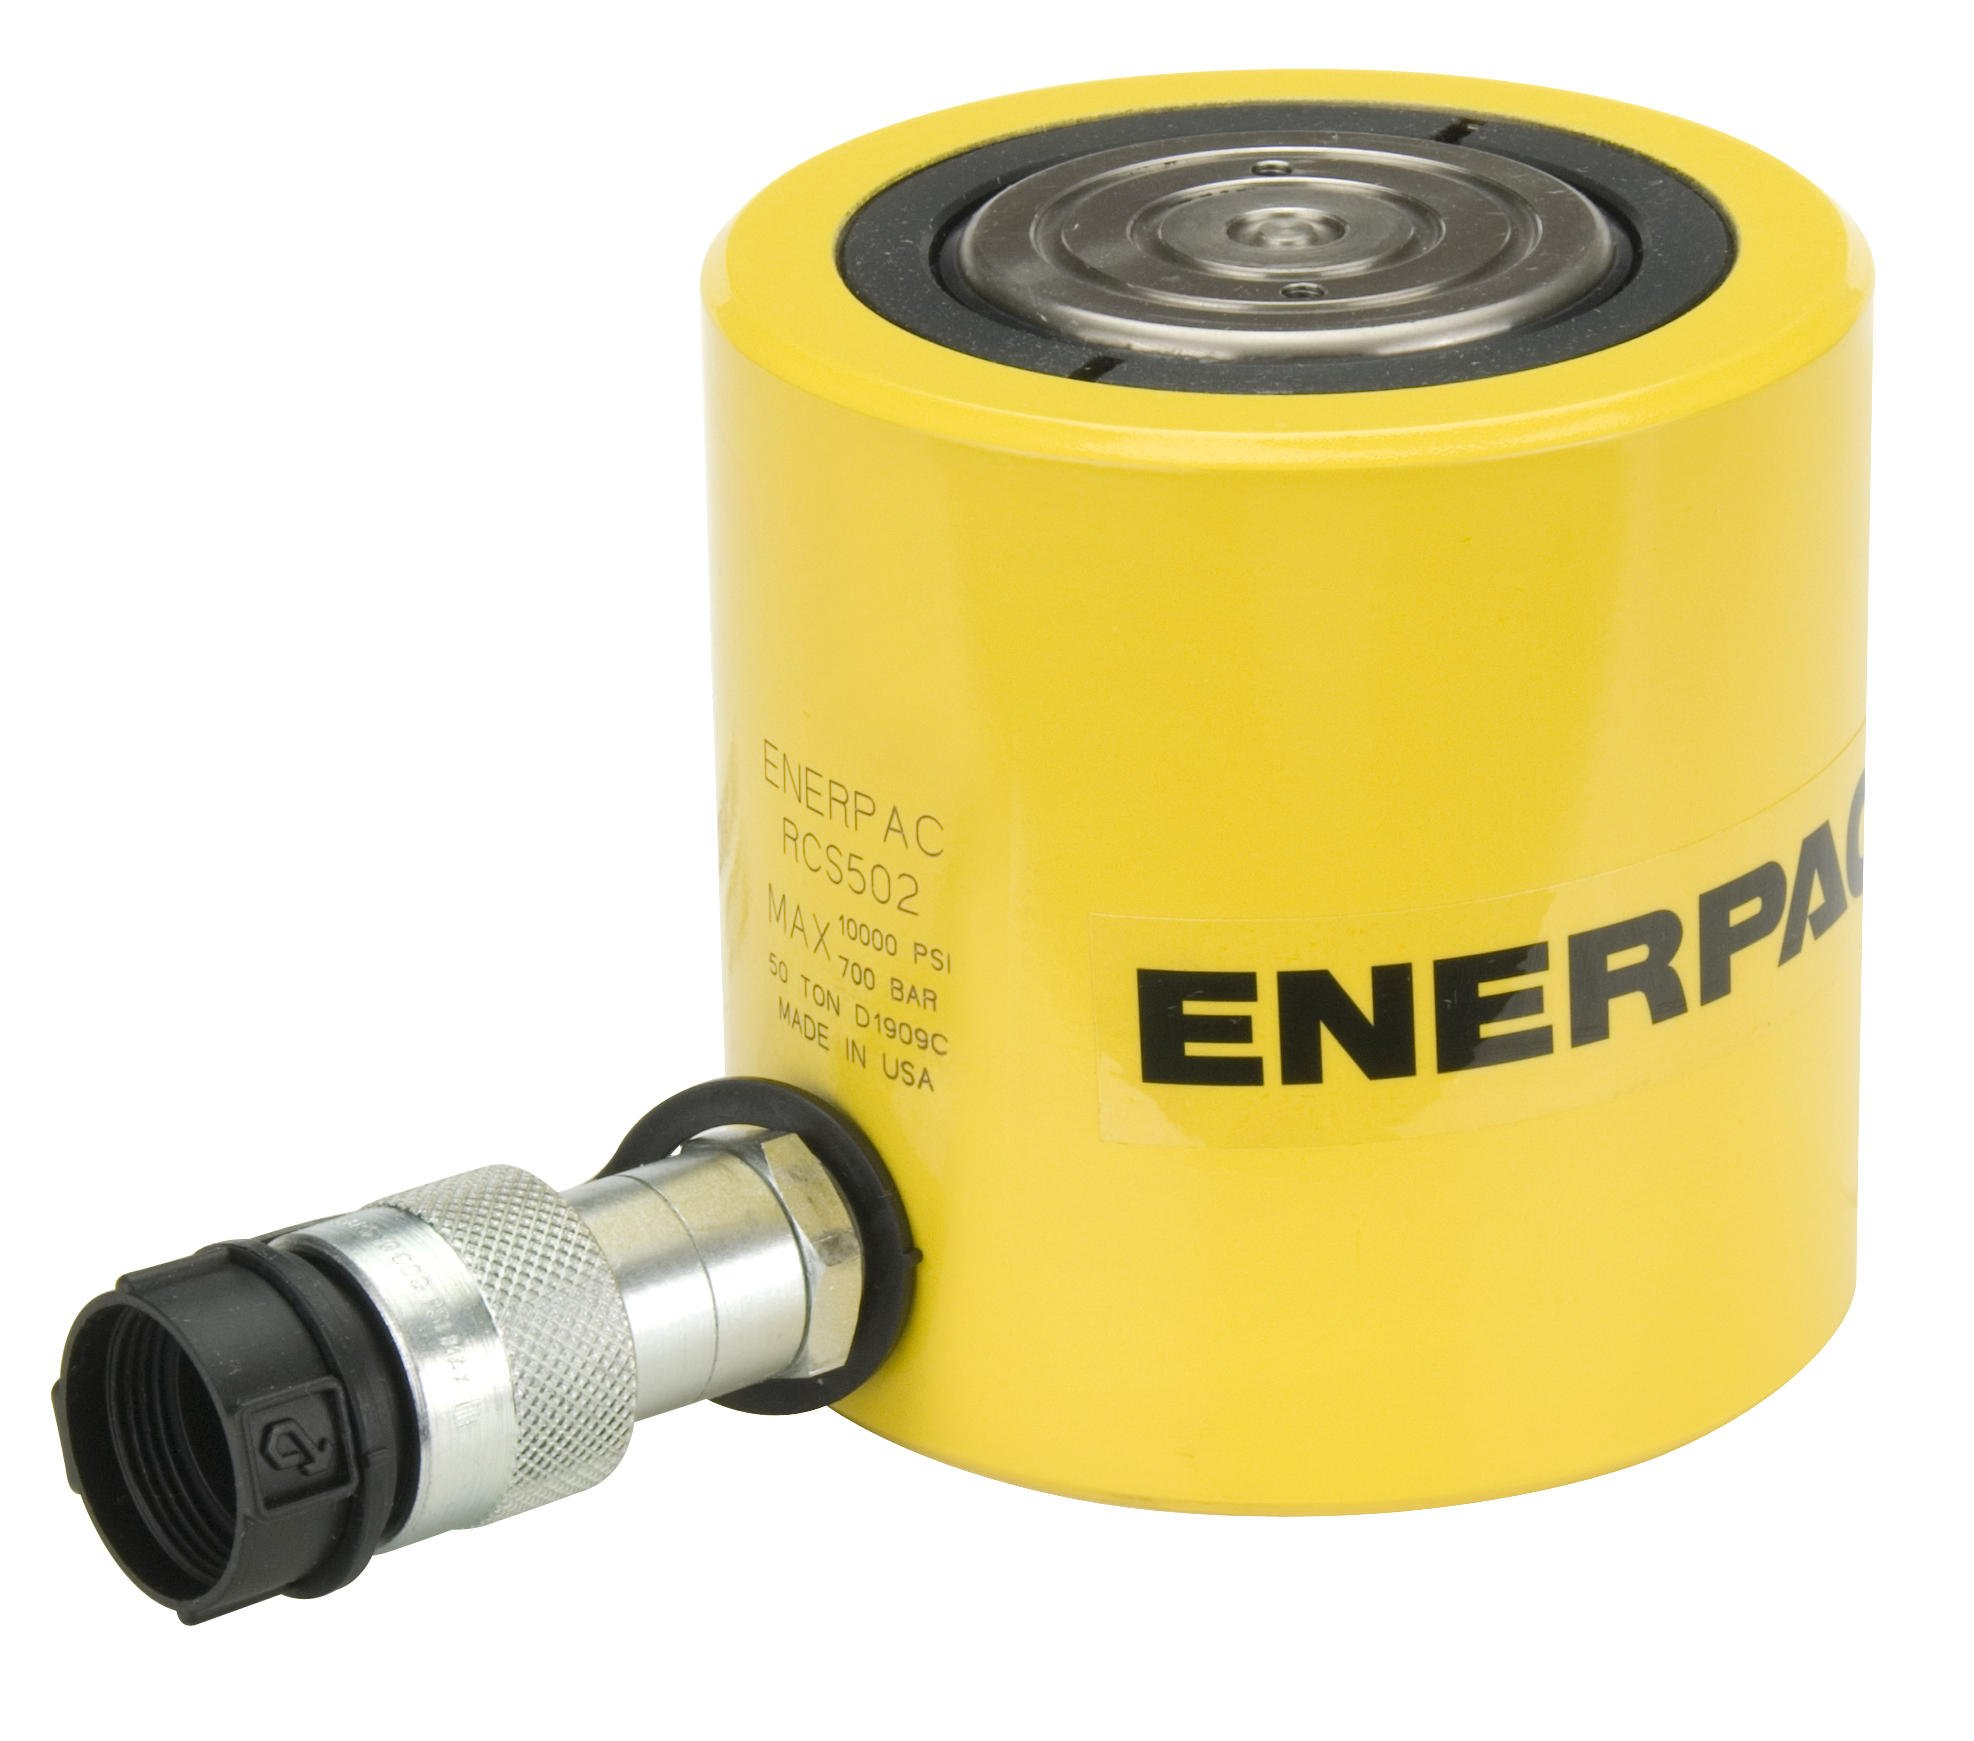 4.13 Stroke 4.13 Stroke Single Port Enerpac RC-104 Single-Acting Alloy Steel Hydraulic Cylinder with 10 Ton Capacity